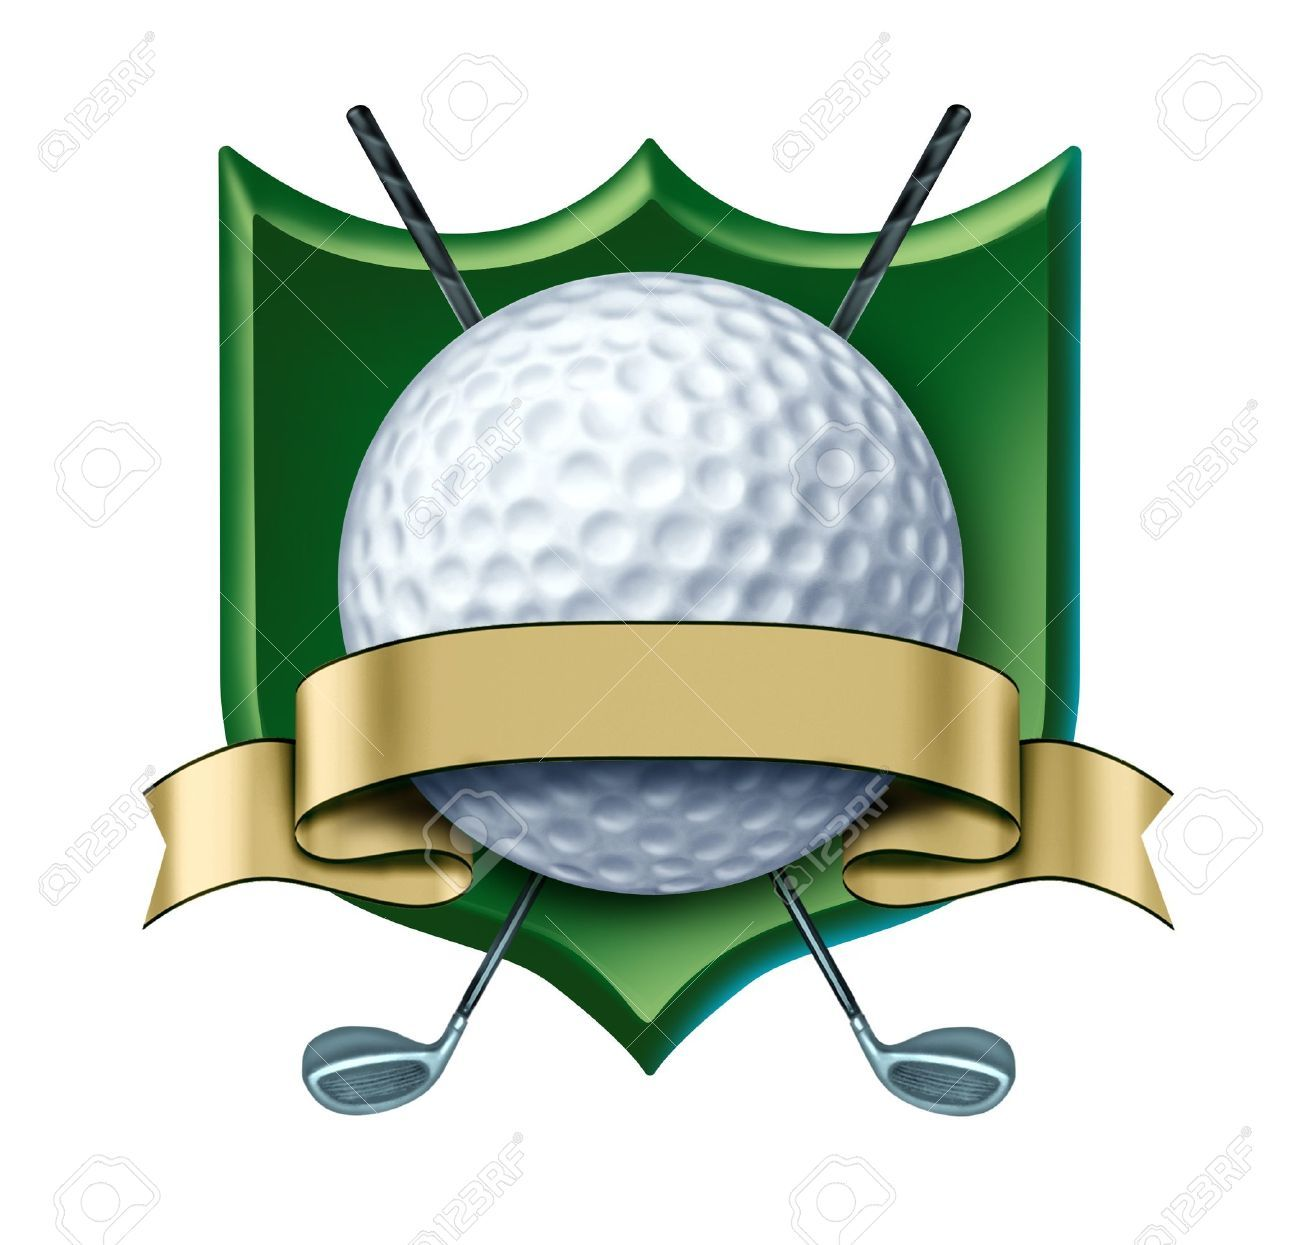 Free golf tournament clipart clip black and white stock Related image | golf tournament | Golf images, Golf tattoo, Golf ... clip black and white stock